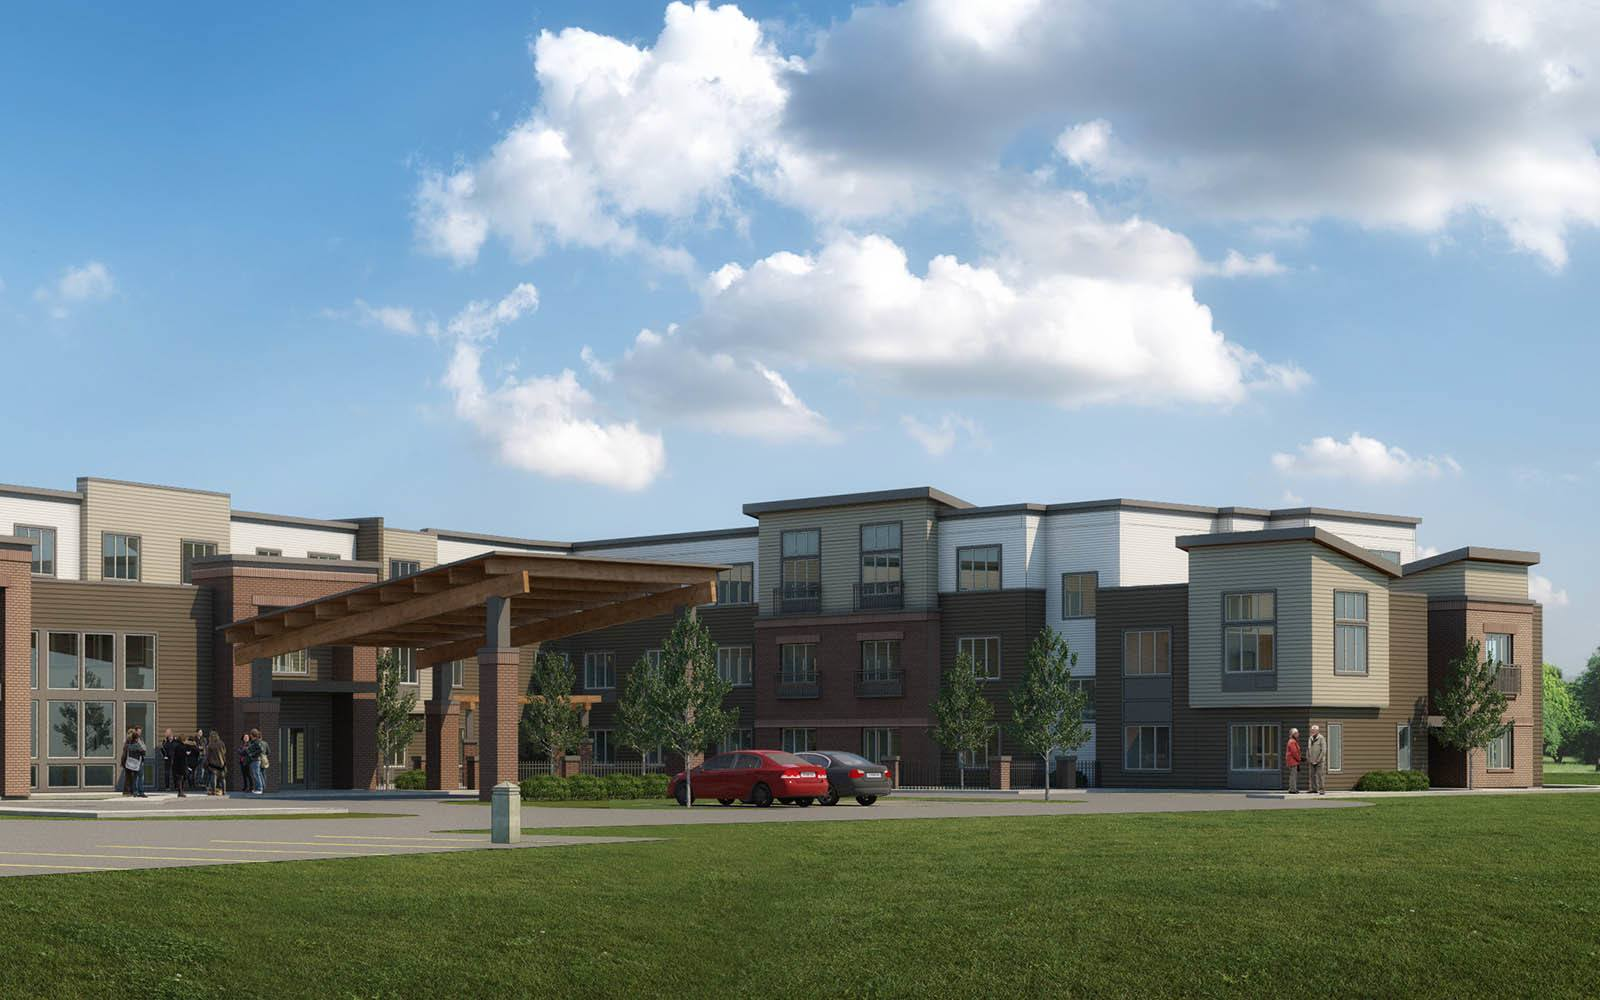 Rendering Of Memory Care Facility Grounds at Brightwater Senior Living of Tuxedo in Winnipeg, MB